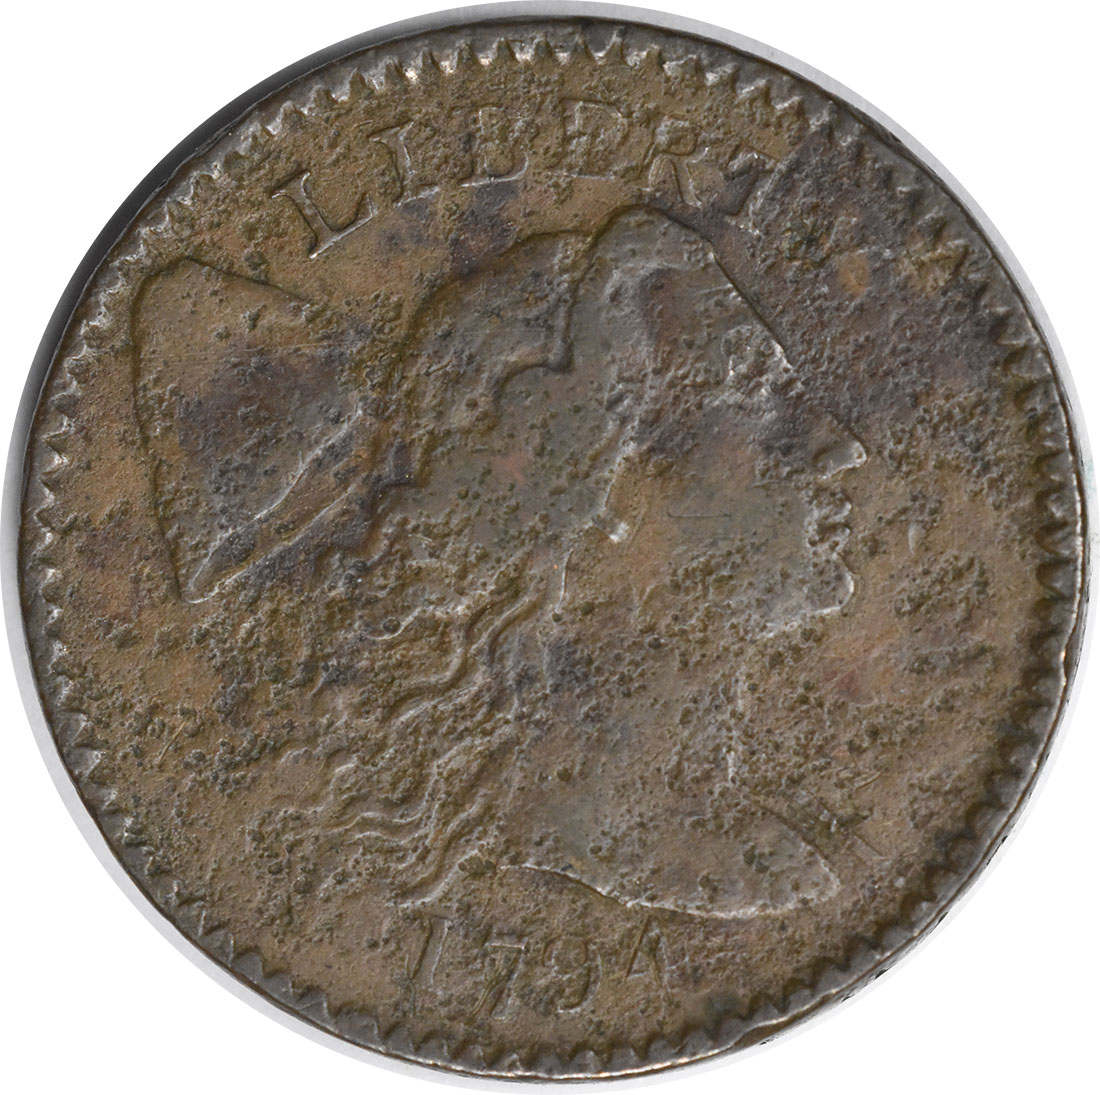 1794 Large Cent Head of 1794 VF (Corrosion) Uncertified